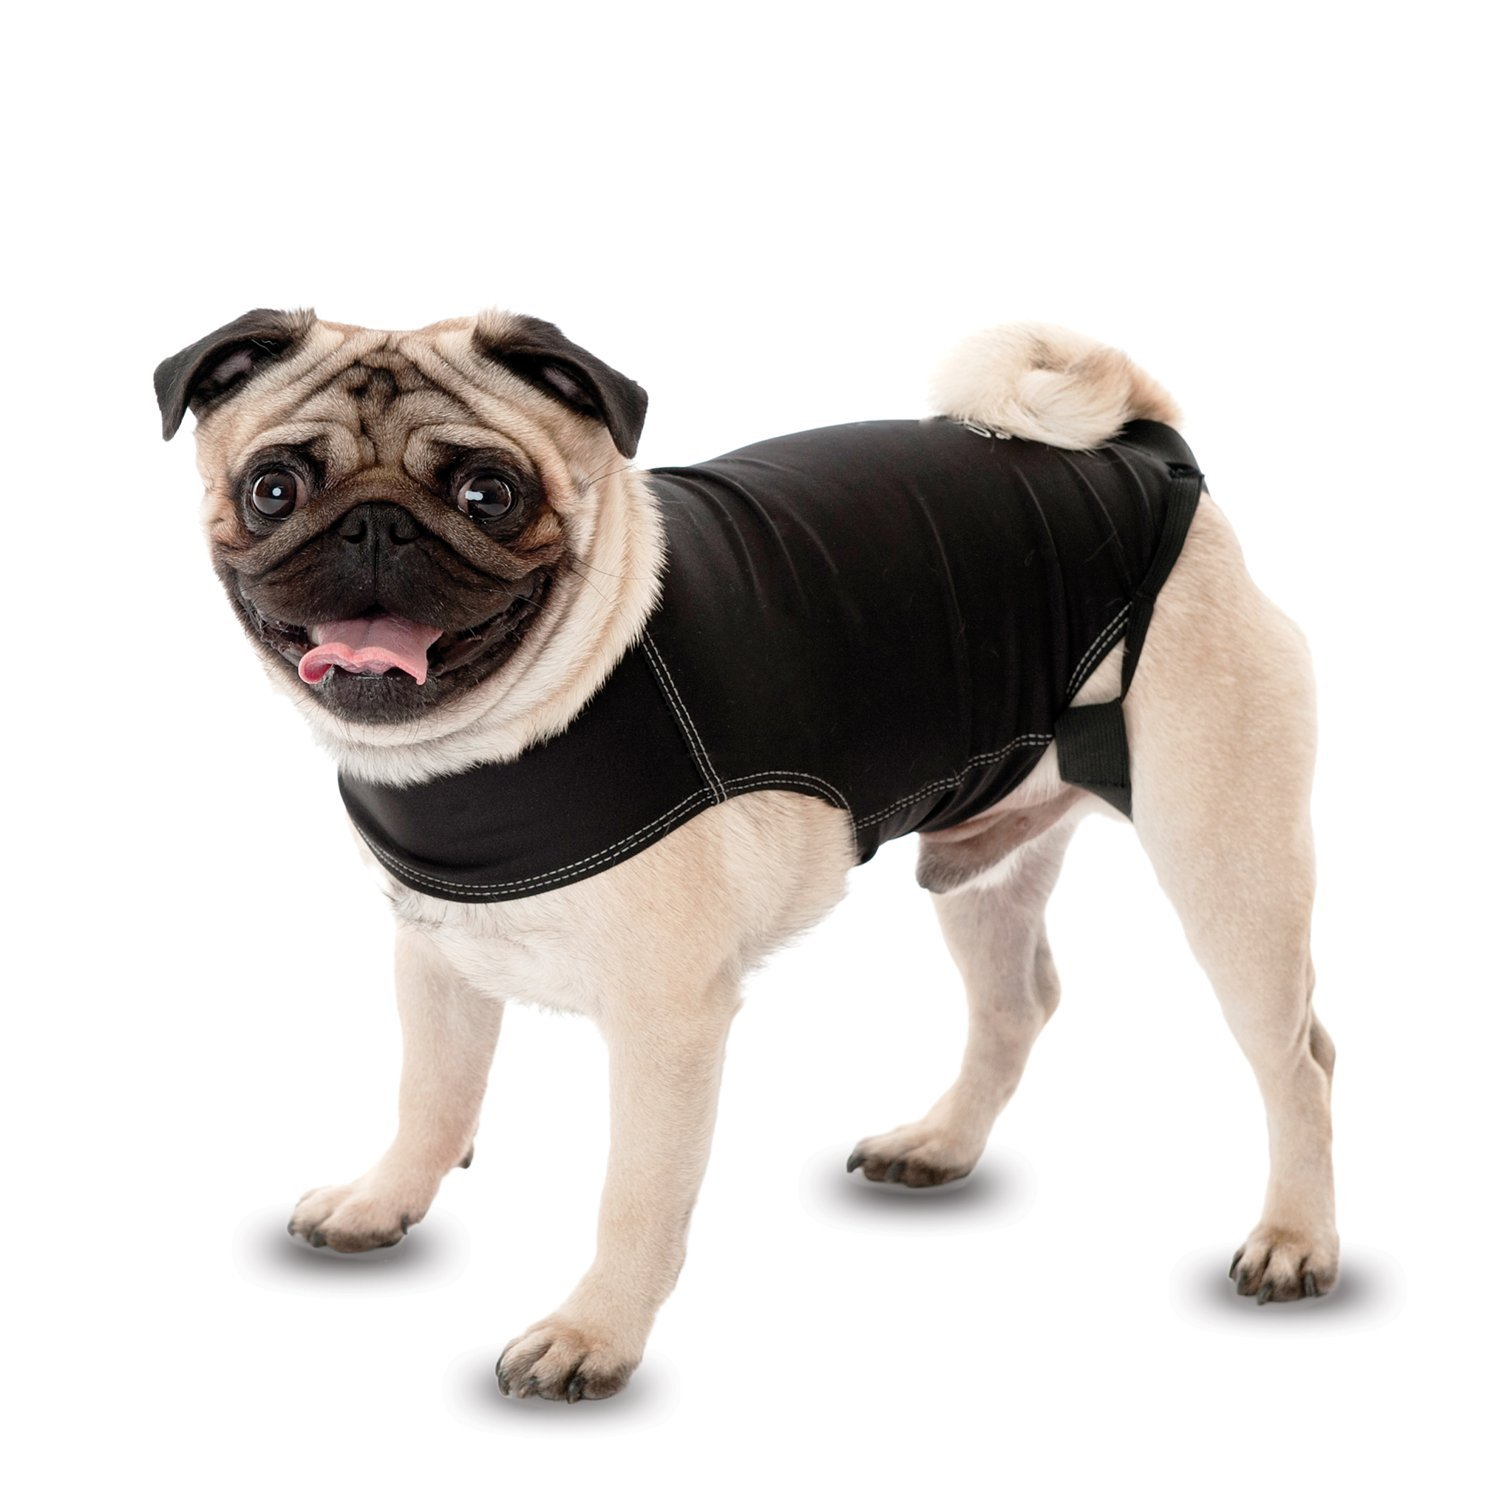 Anxiety Wrap Dog Coat, instant therapy for dogs afraid of storms, loud noises, travel, strangers and separation. Size 7 (X-Large) The Company of Animals AW07